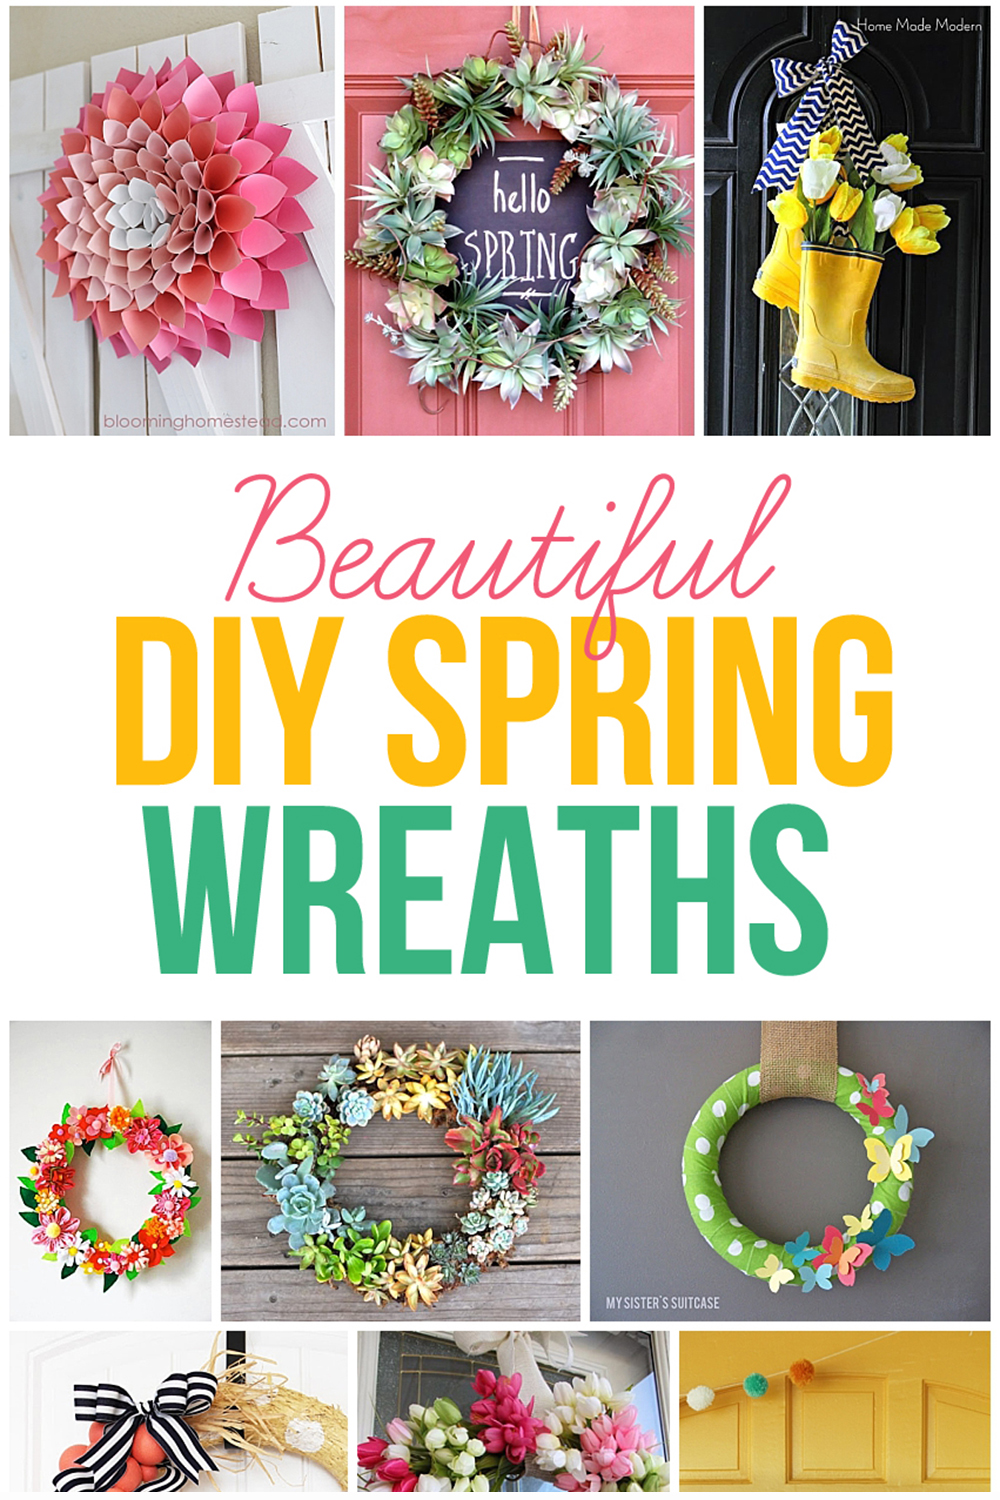 Get your craft on and make some one of these beautiful DIY spring wreaths this year! #springdecor #diywreaths #handmadewreaths #diyspringdecor